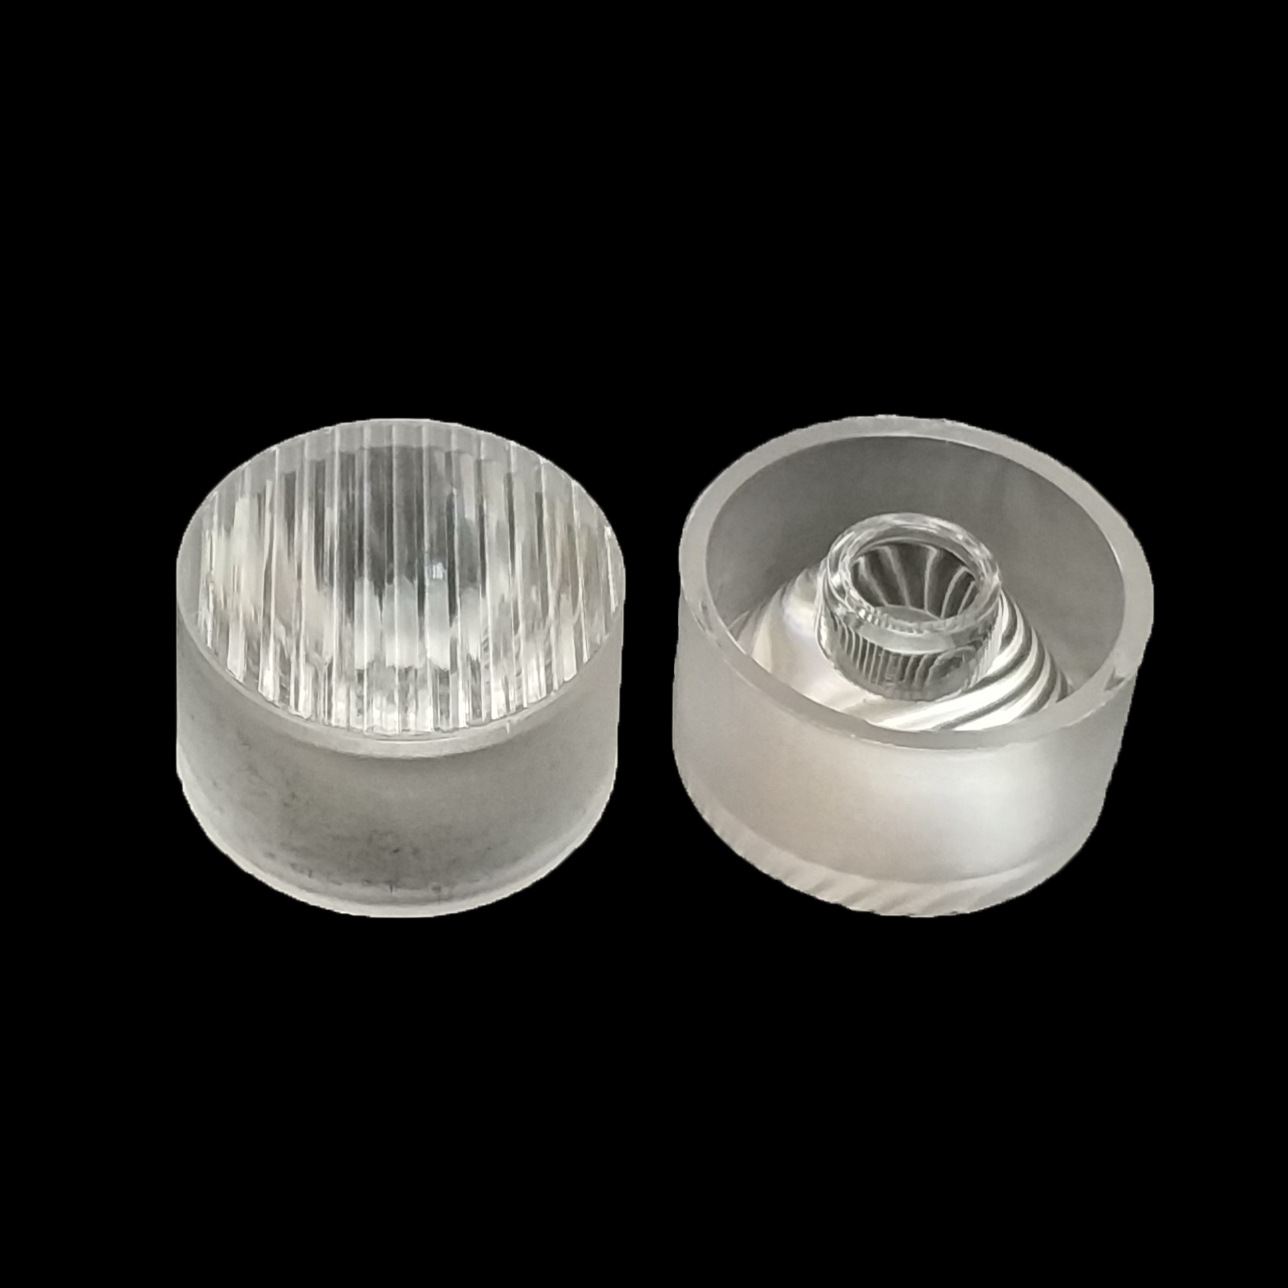 15mm/ 14.5mm Diameter LED Lens Waterproof Series For SMD 3030/ 2835